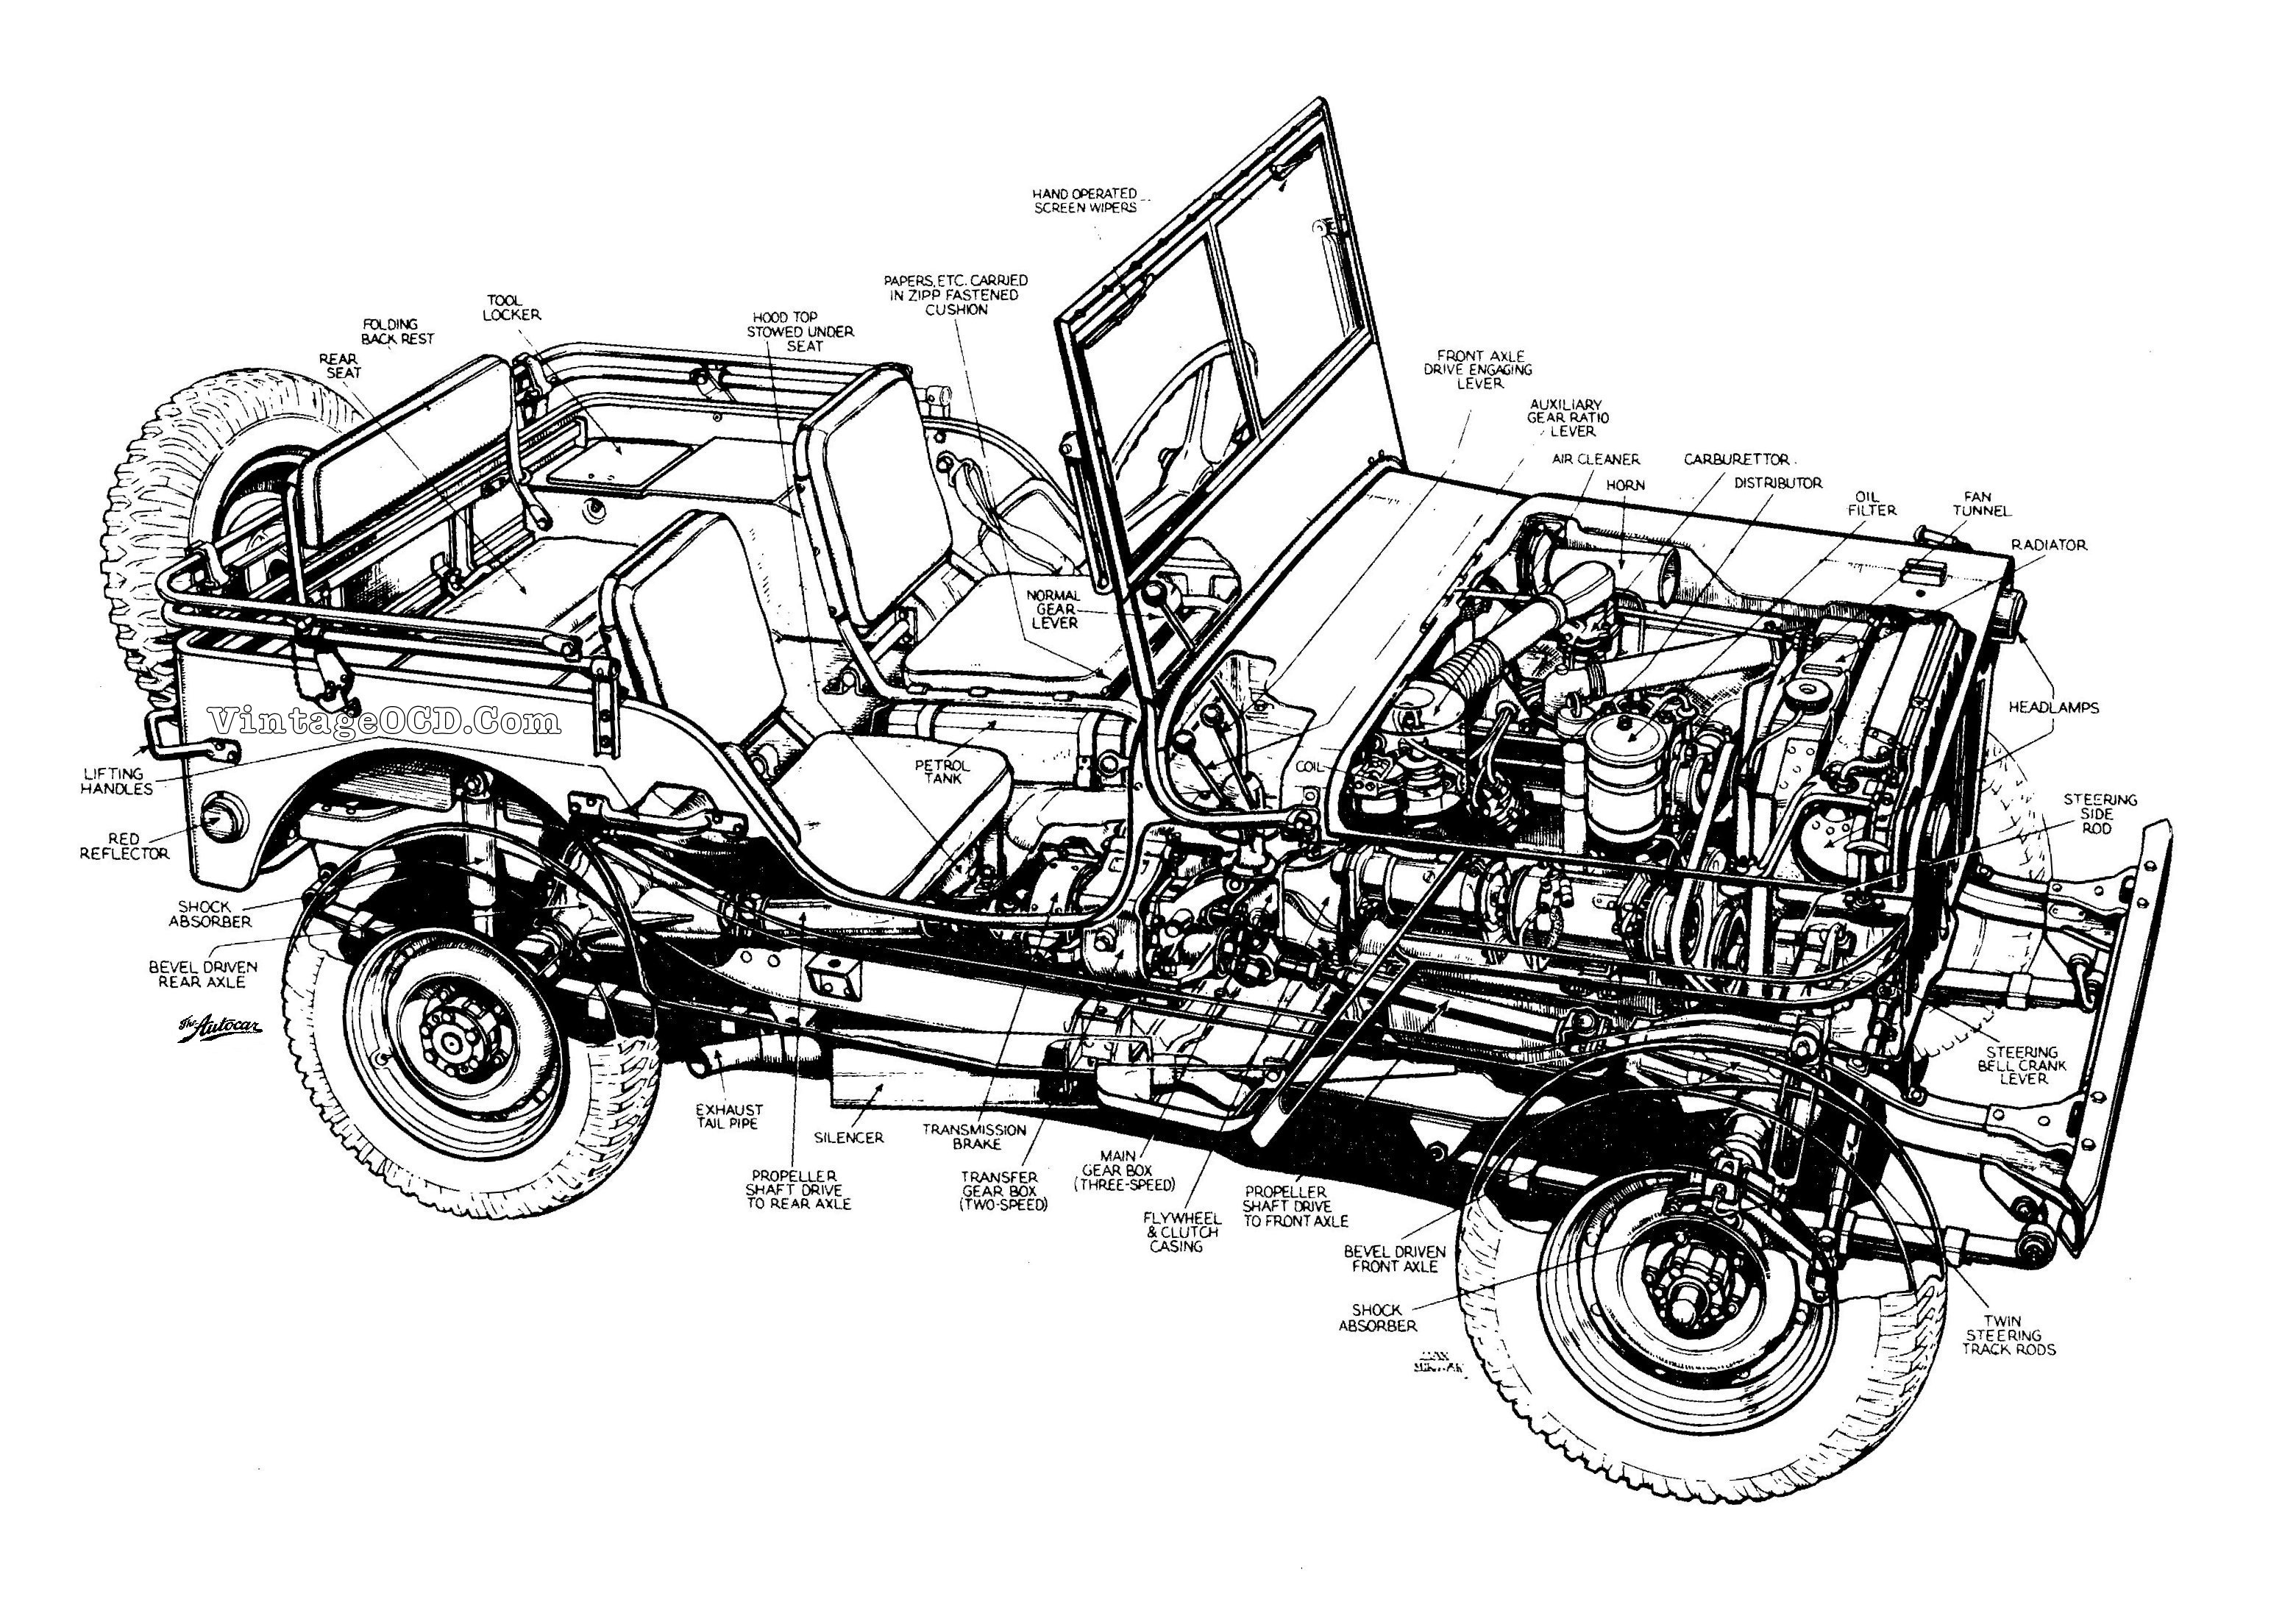 1984 Cj8 Wiring Diagram, 1984, Get Free Image About Wiring